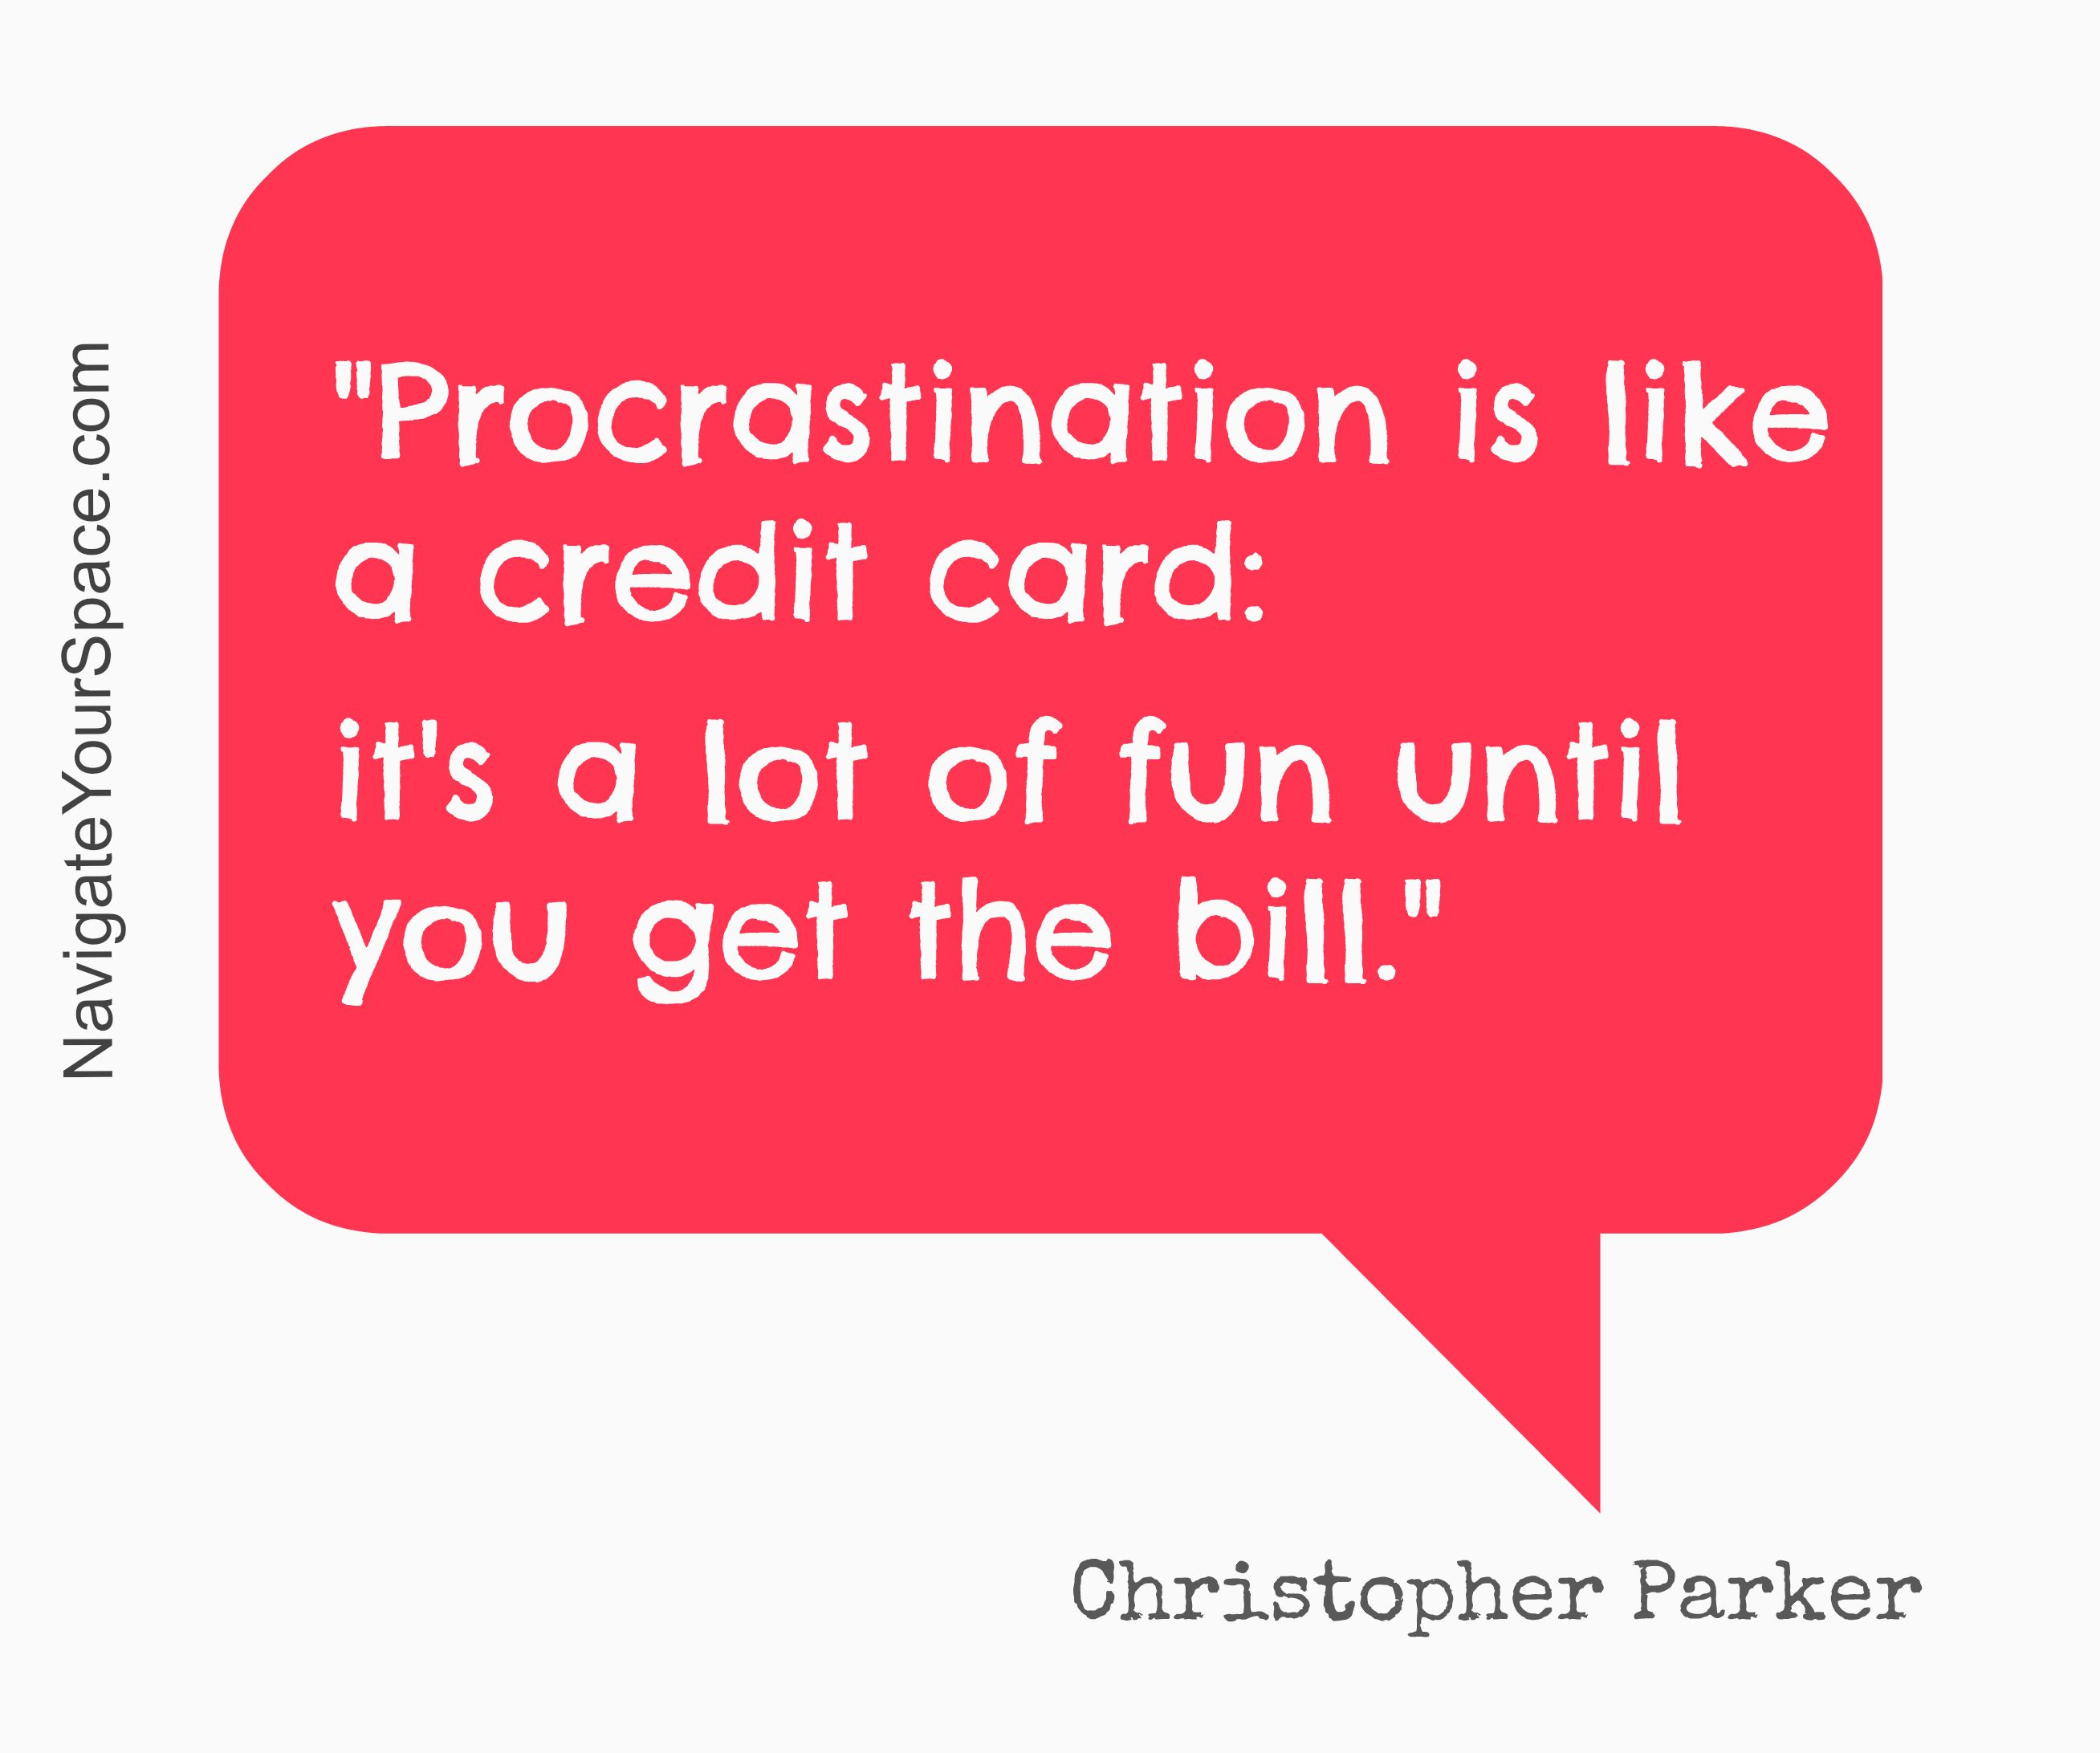 best images about procrastination t shirts 17 best images about procrastination t shirts health and this is me